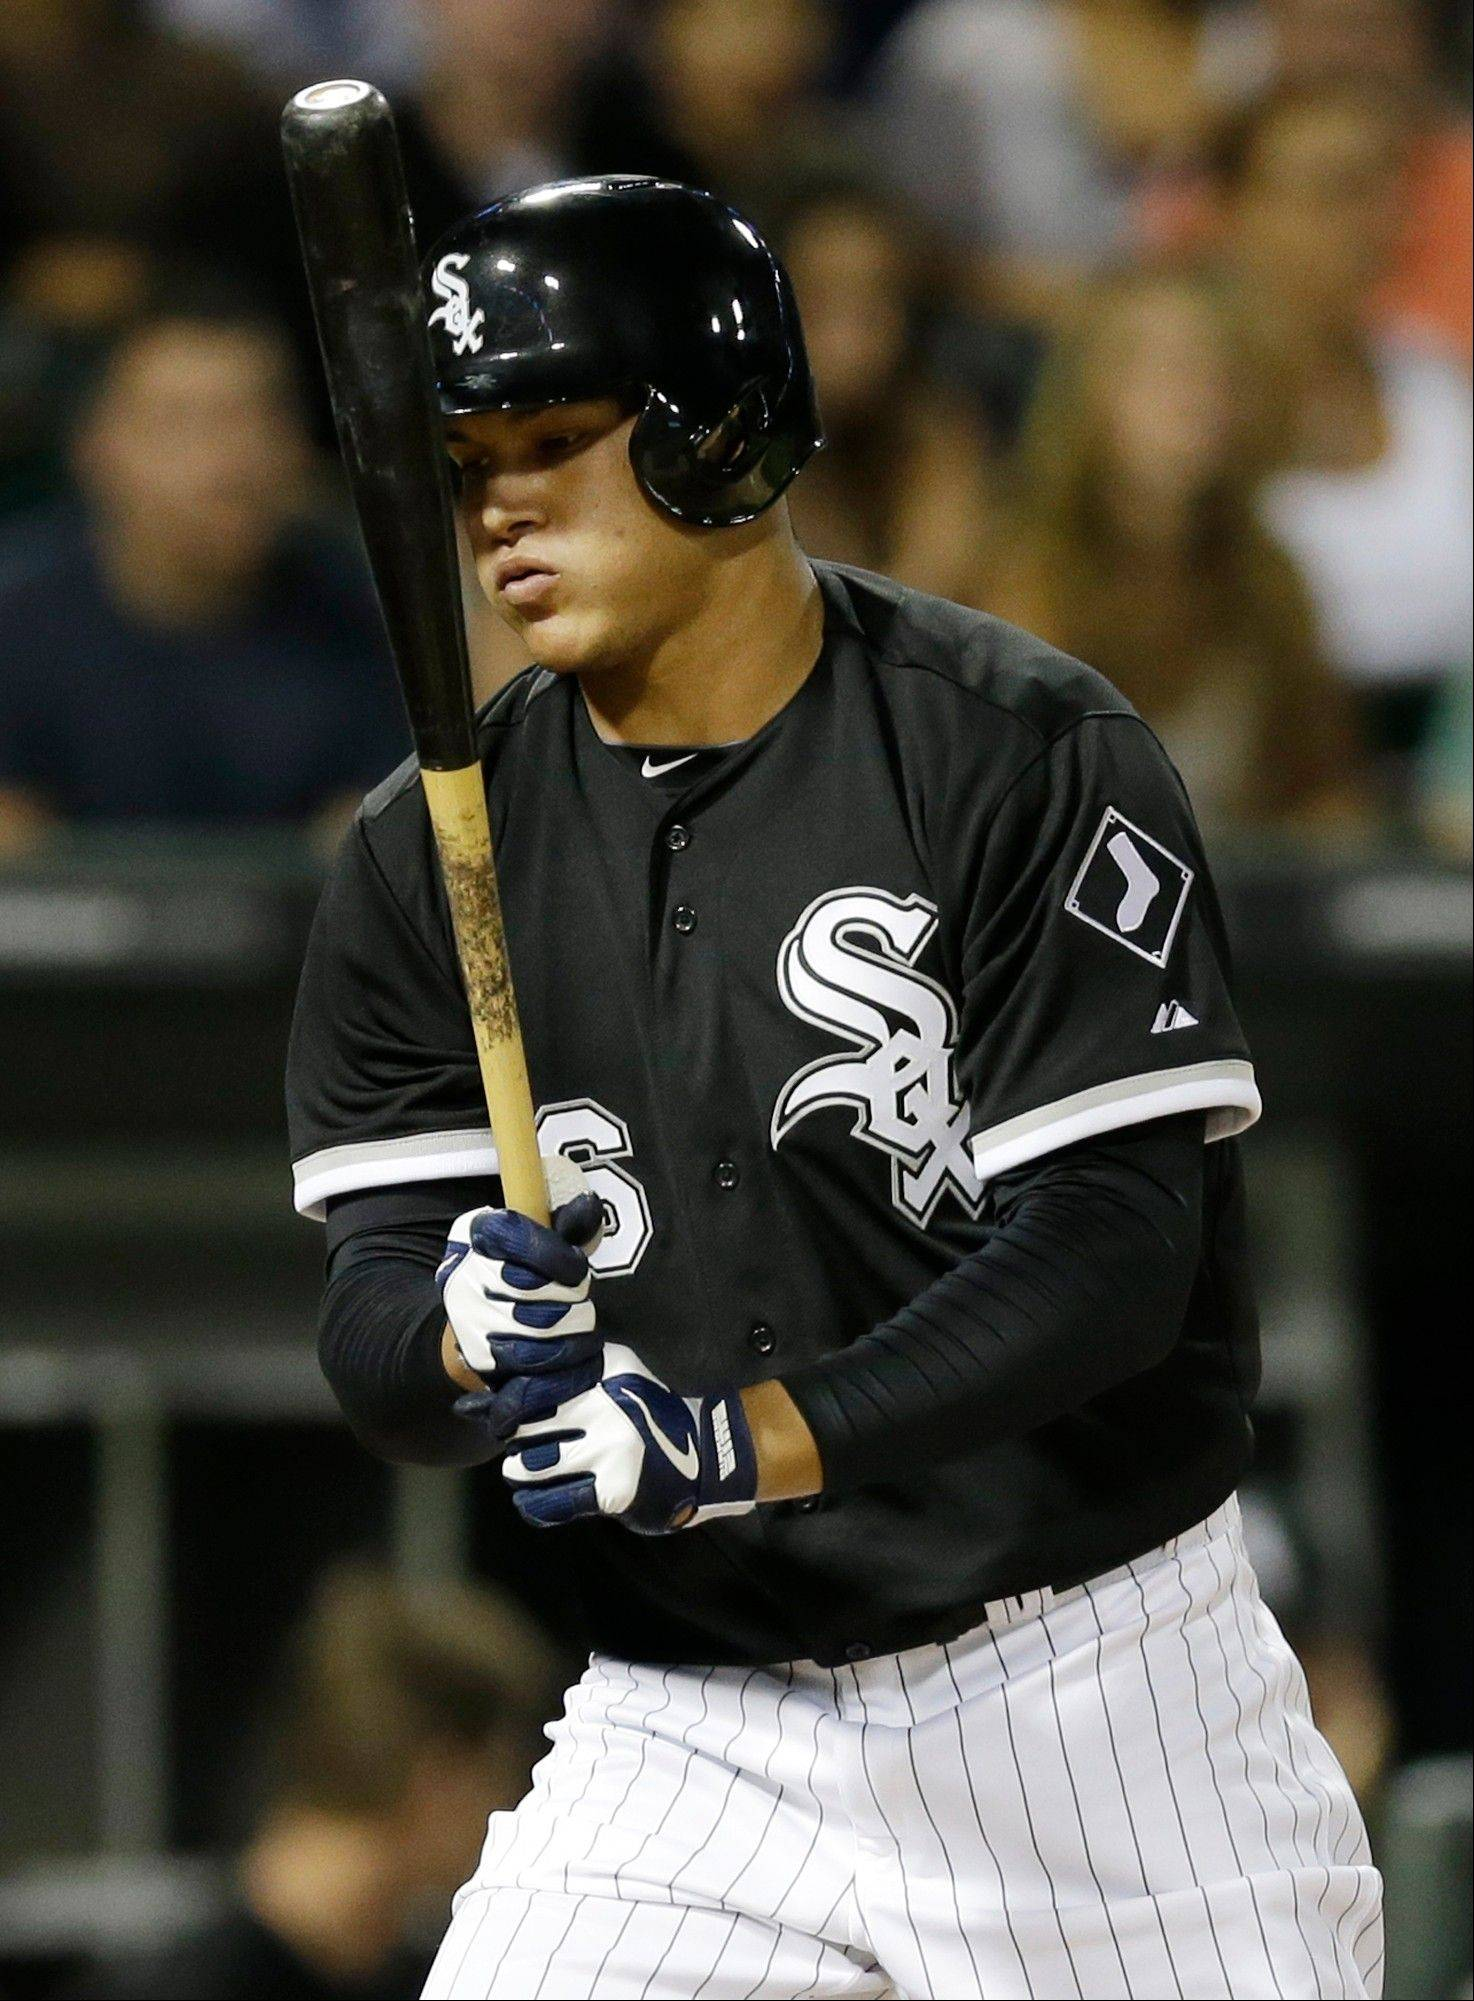 Avisail Garcia reacts after striking out in his first at-bat with the White Sox during the seventh inning of the second game Friday night against the Twins at U.S. Cellular Field.